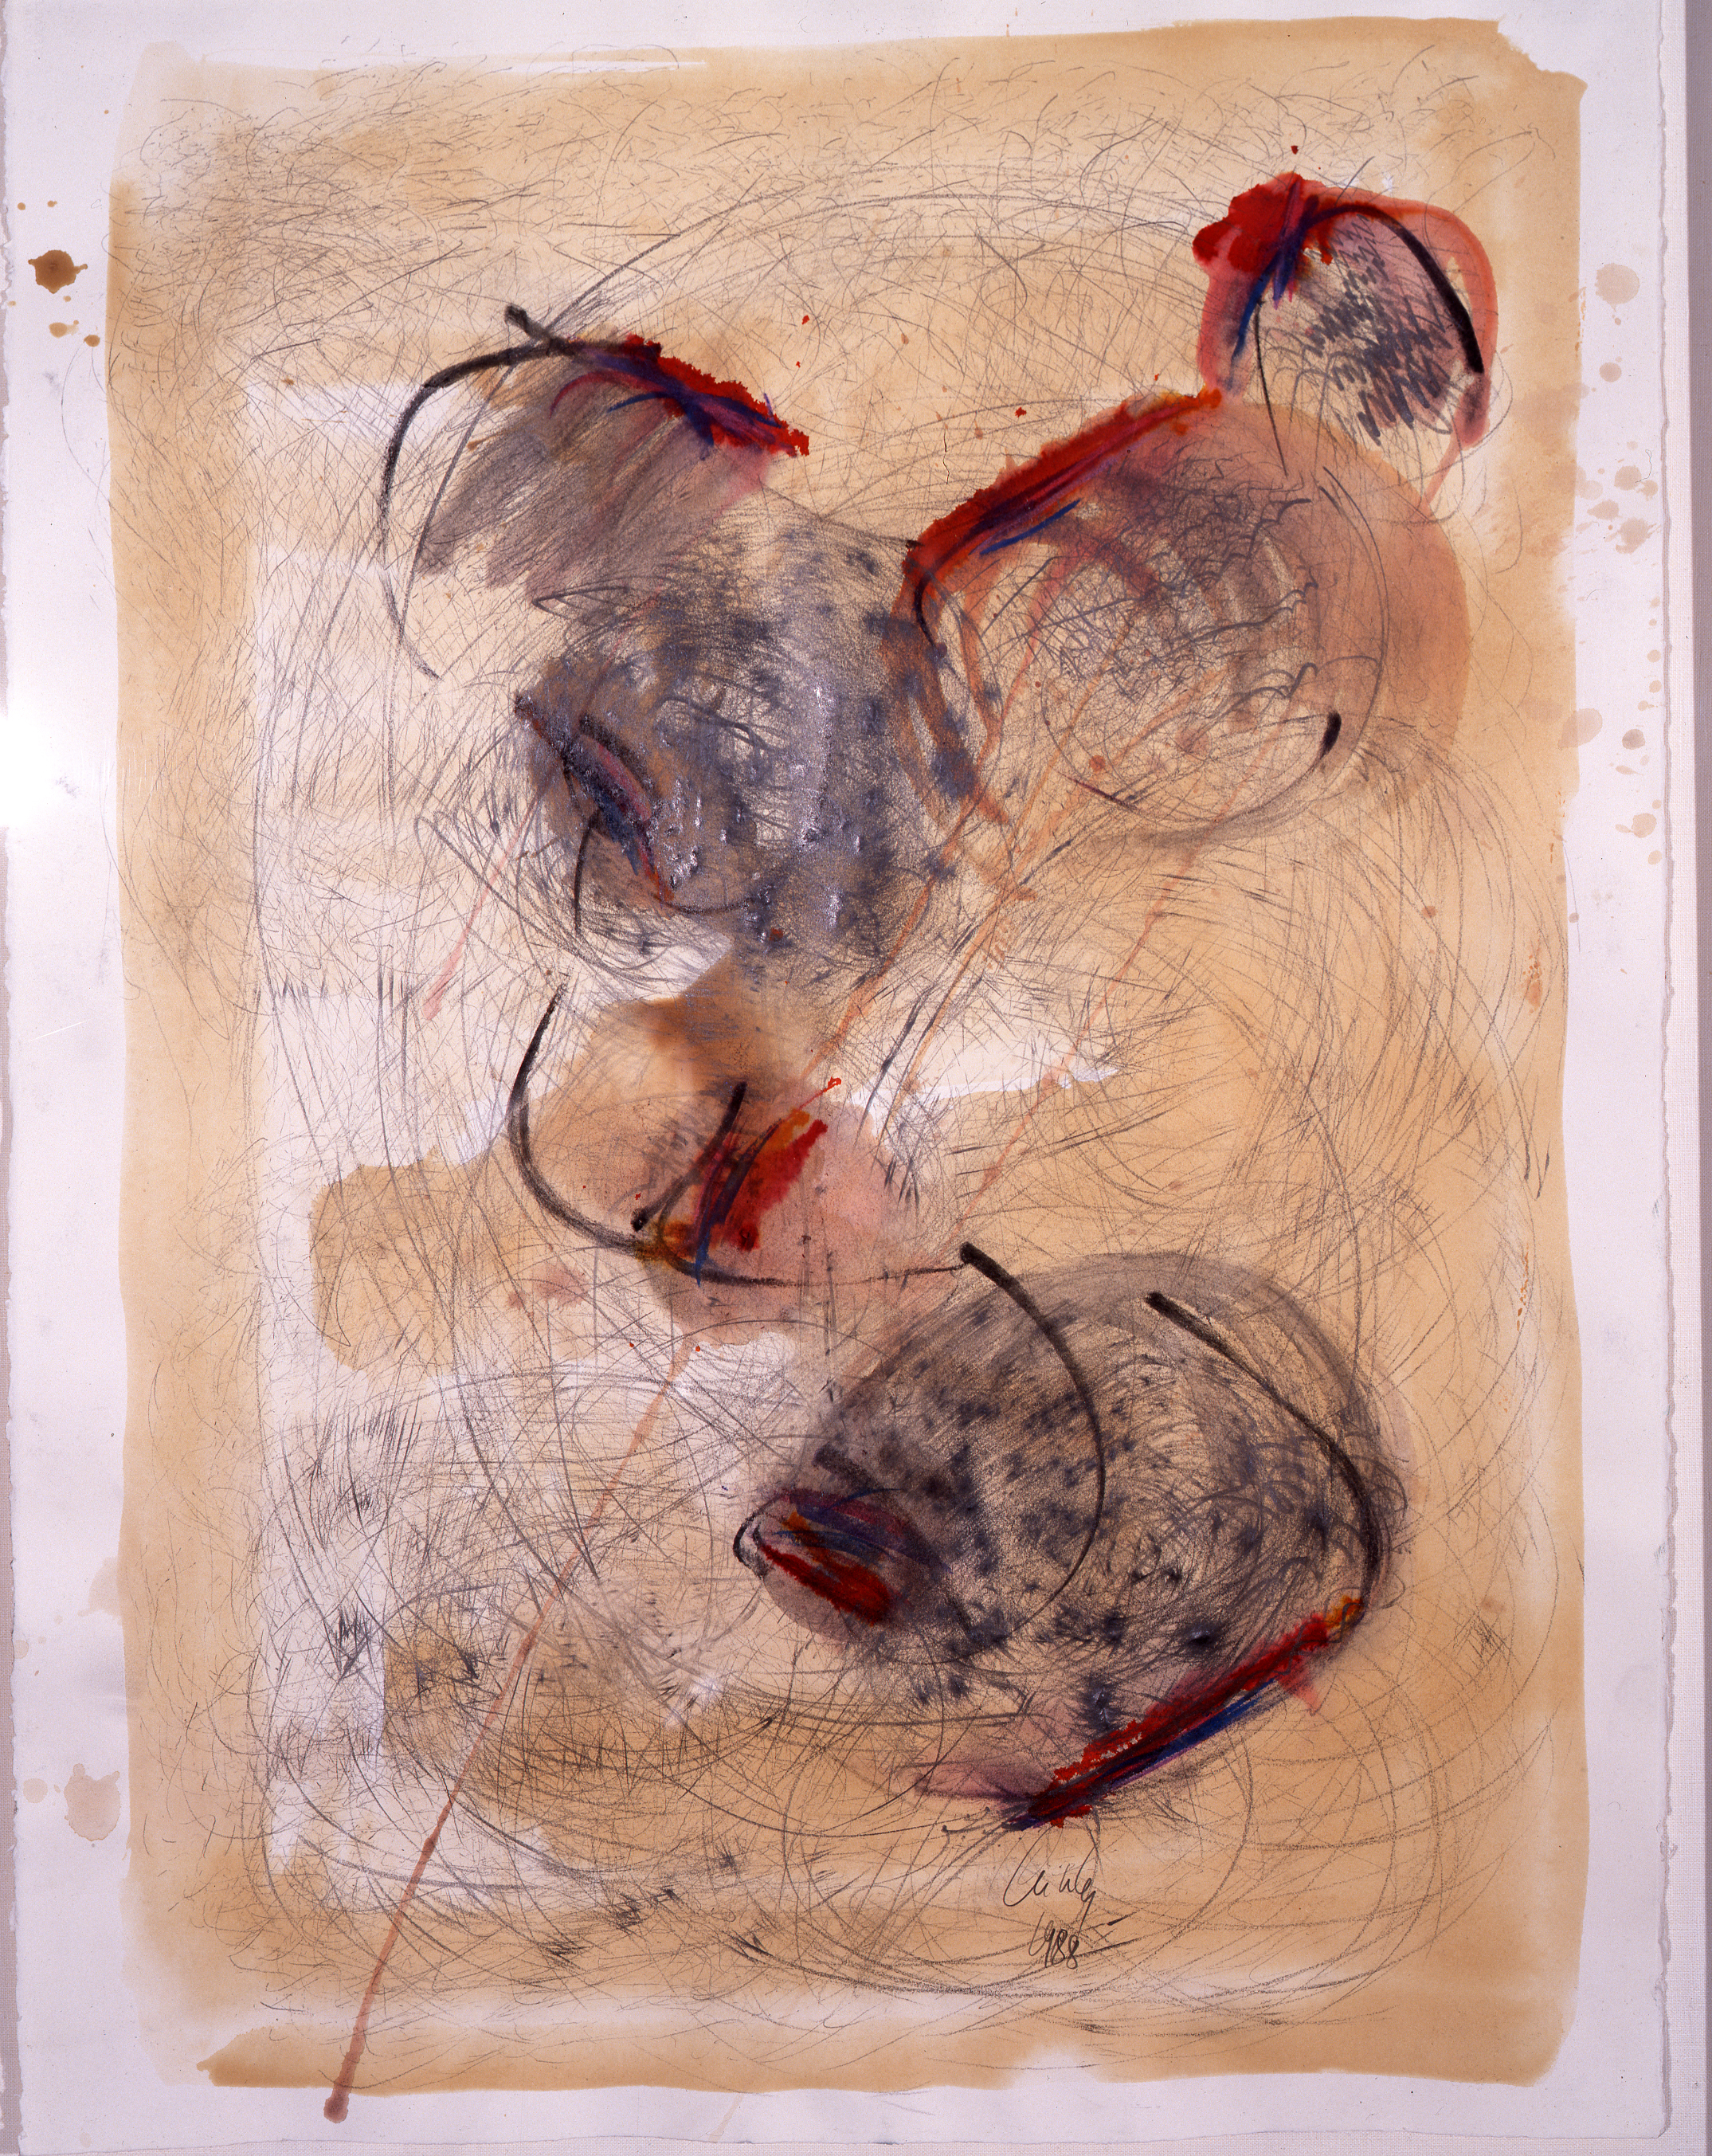 Dale Chihuly,  Basket Drawing,  (1988, mixed media on paper, 30 x 22 inches), DC.364